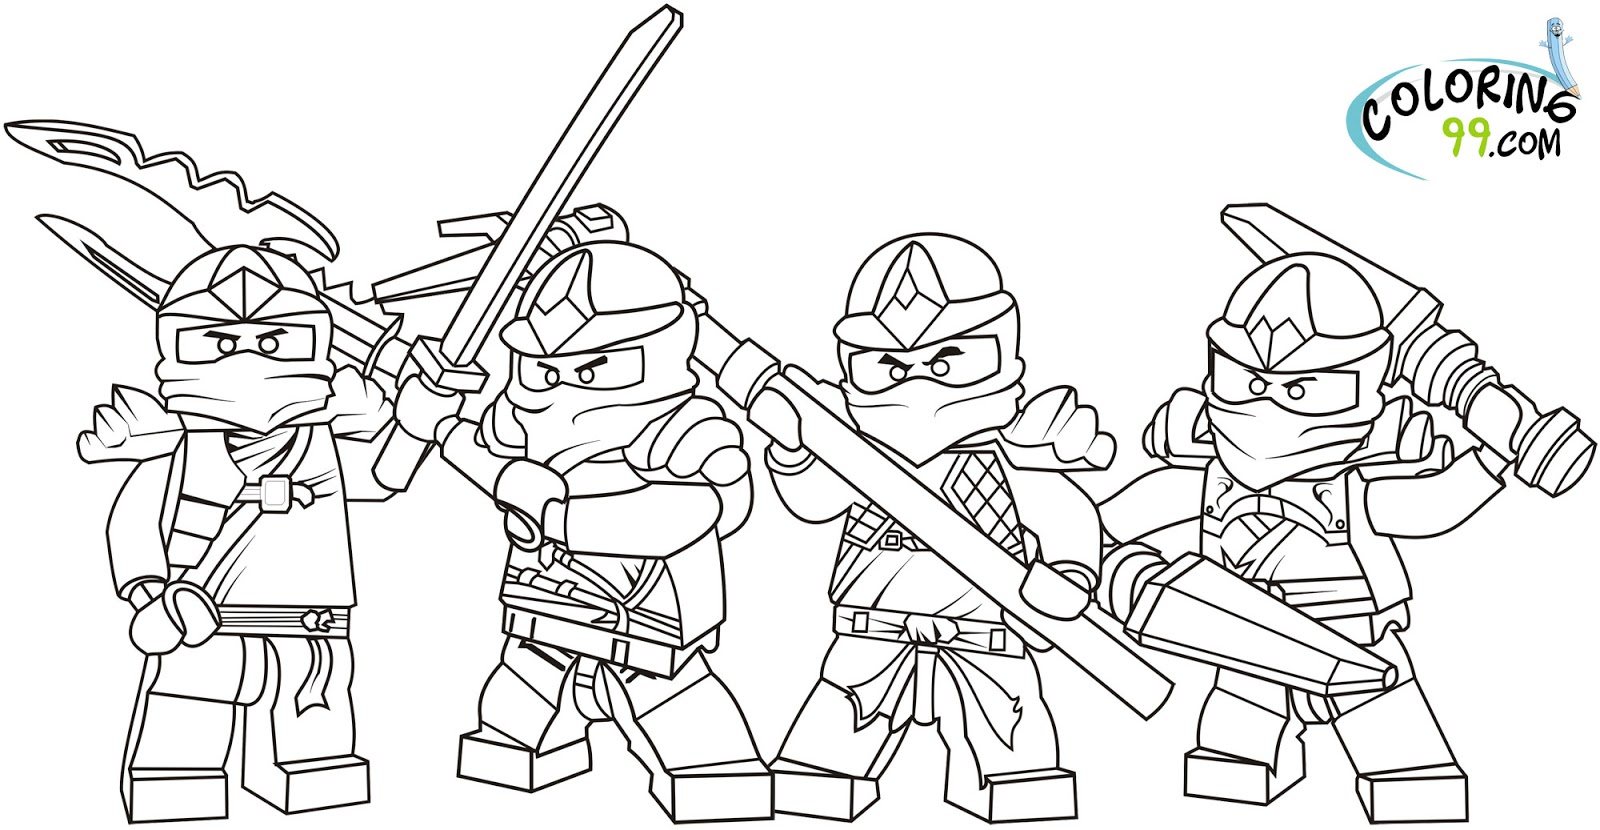 The Lego Movie Free Printables, Coloring Pages, Activities  - lego movie coloring pages